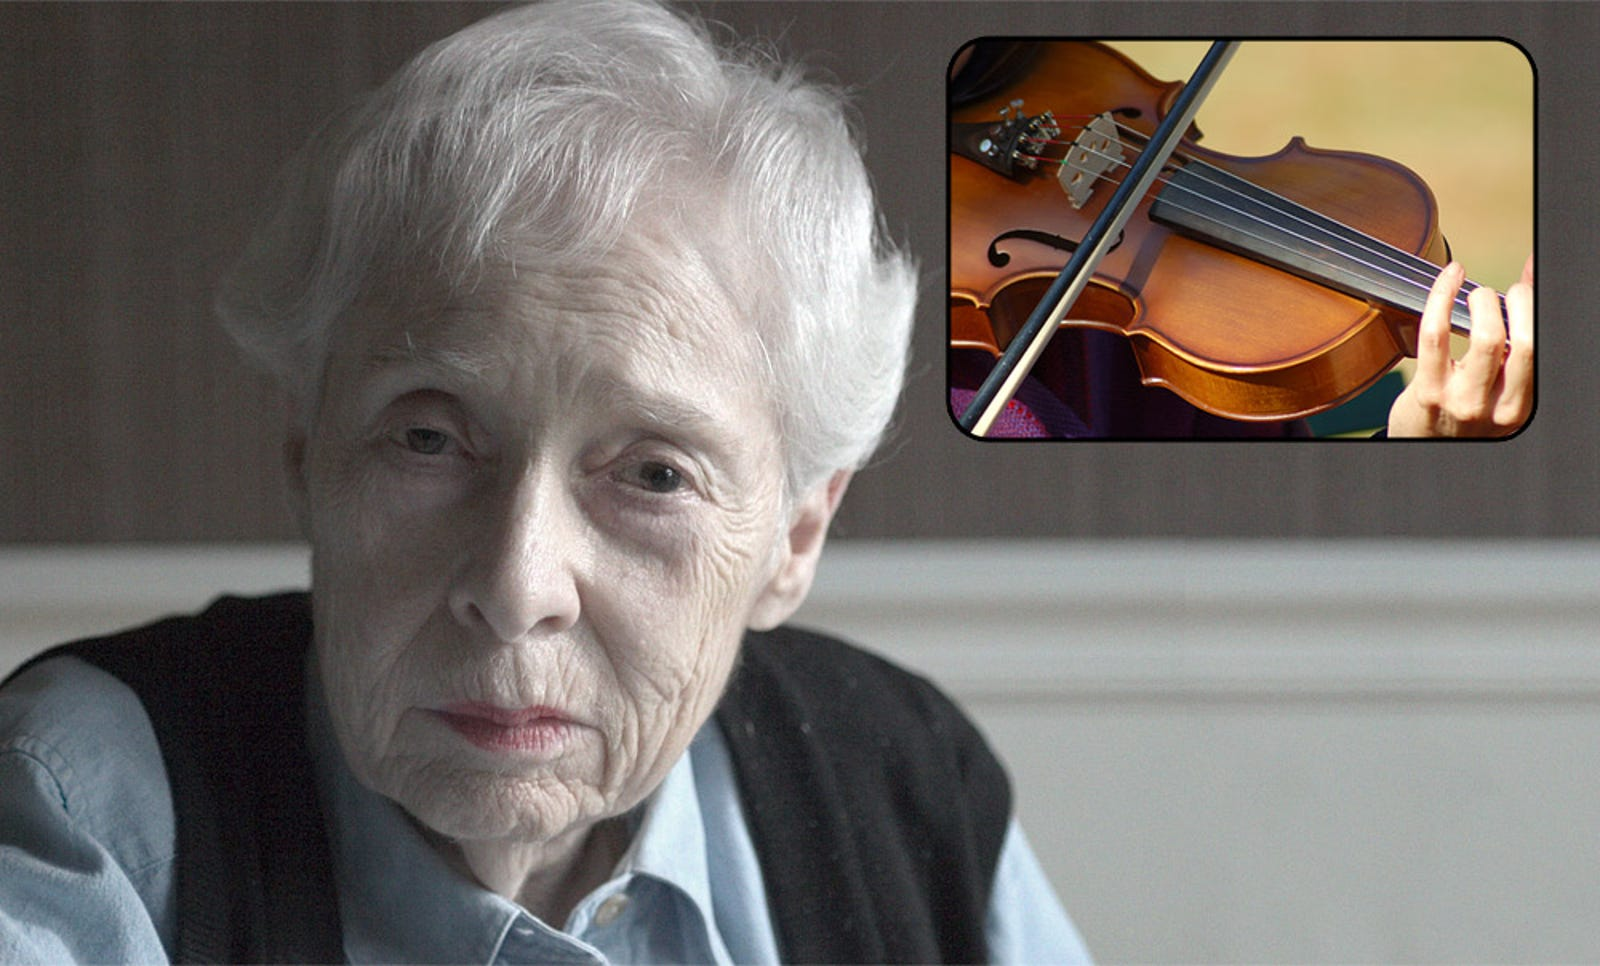 97-Year-Old Dies Unaware Of Being Violin Prodigy